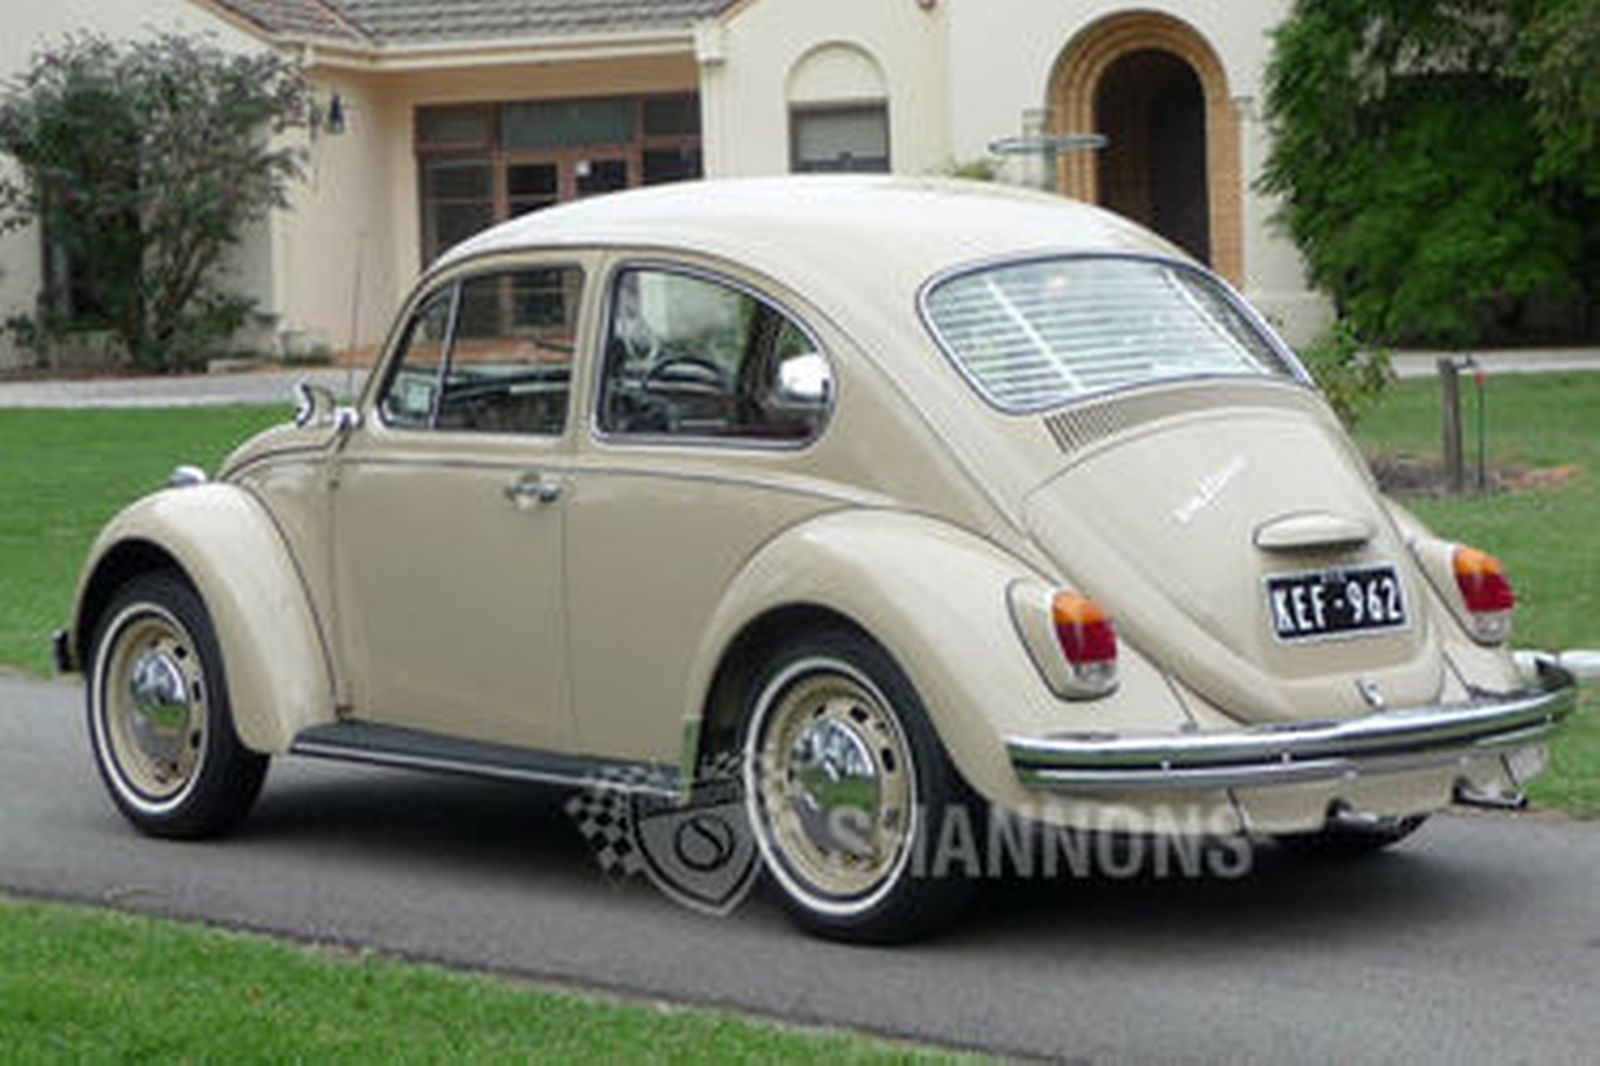 Sold: Volkswagen Beetle Coupe Auctions - Lot 39 - Shannons